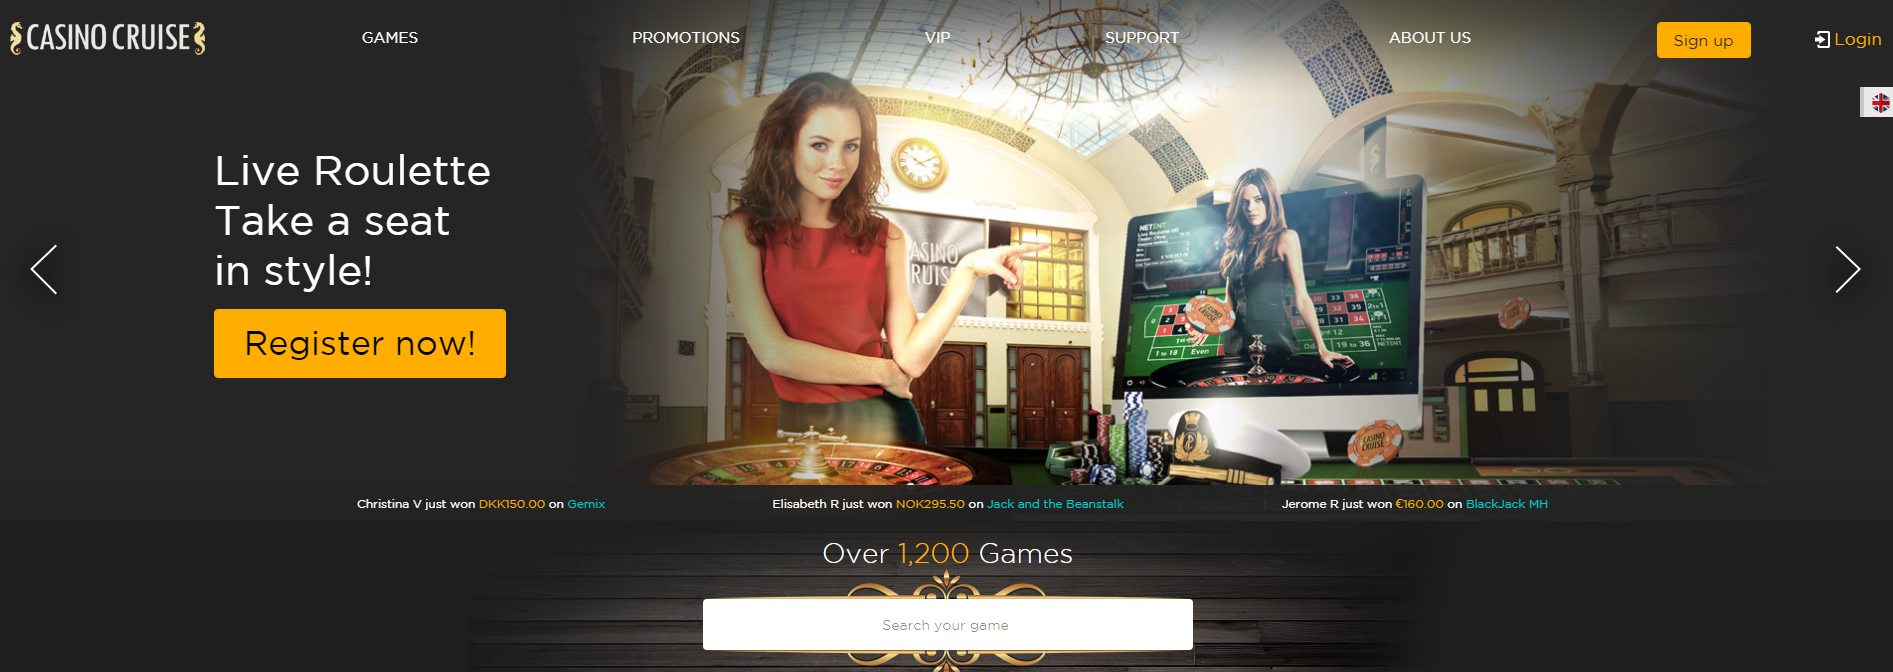 Online-Casino-CasinoCruise